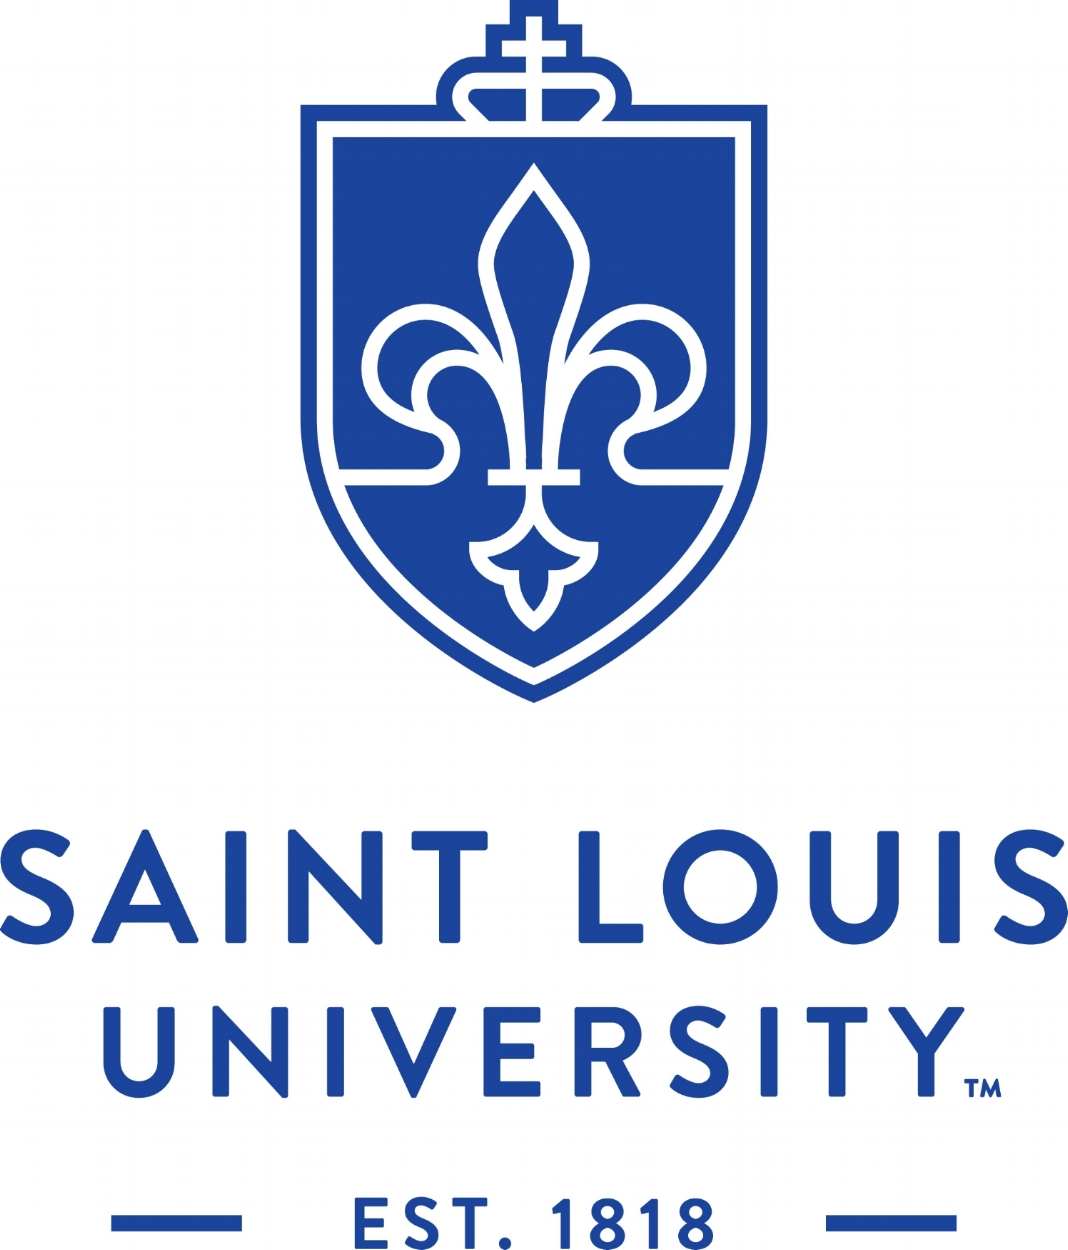 Saint Louis University - Department of Aerospace & Mechanical EngineeringDepartment of Electrical & Computer EngineeringParks College of Engineering, Aviation and Technology